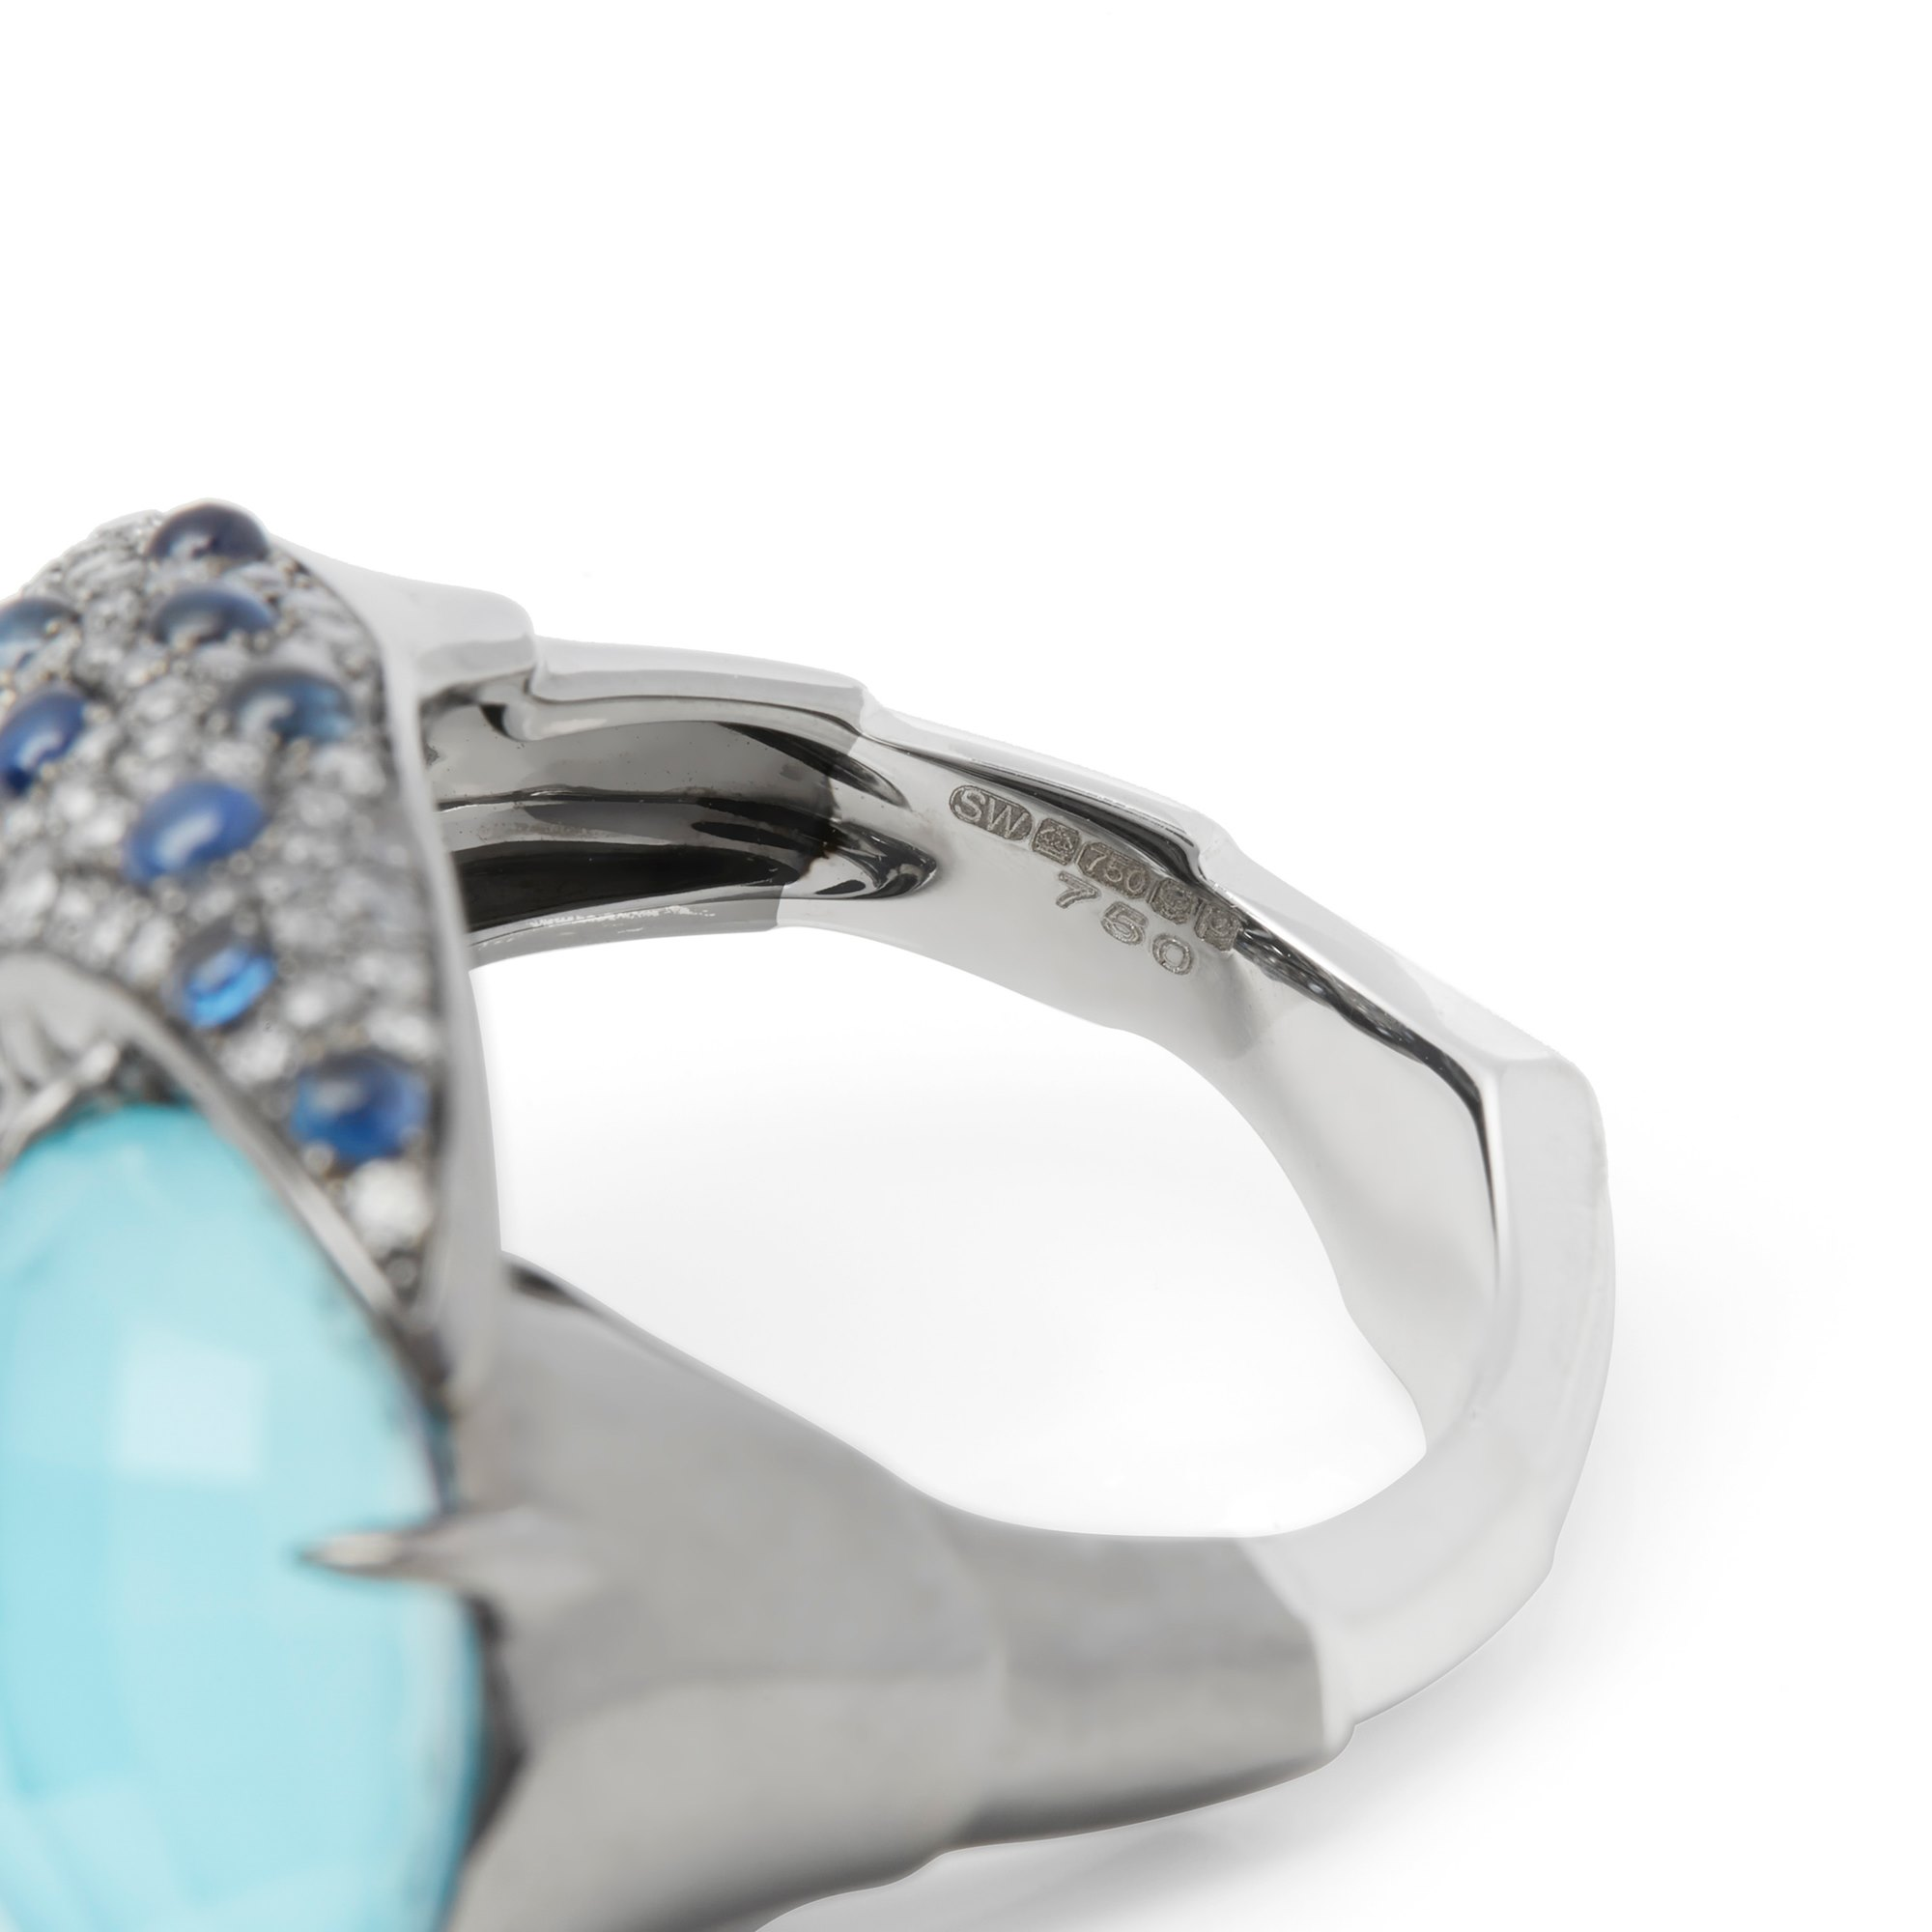 Stephen Webster 18k White Gold Jewels Verne Turquoise and Blue Sapphire Ring